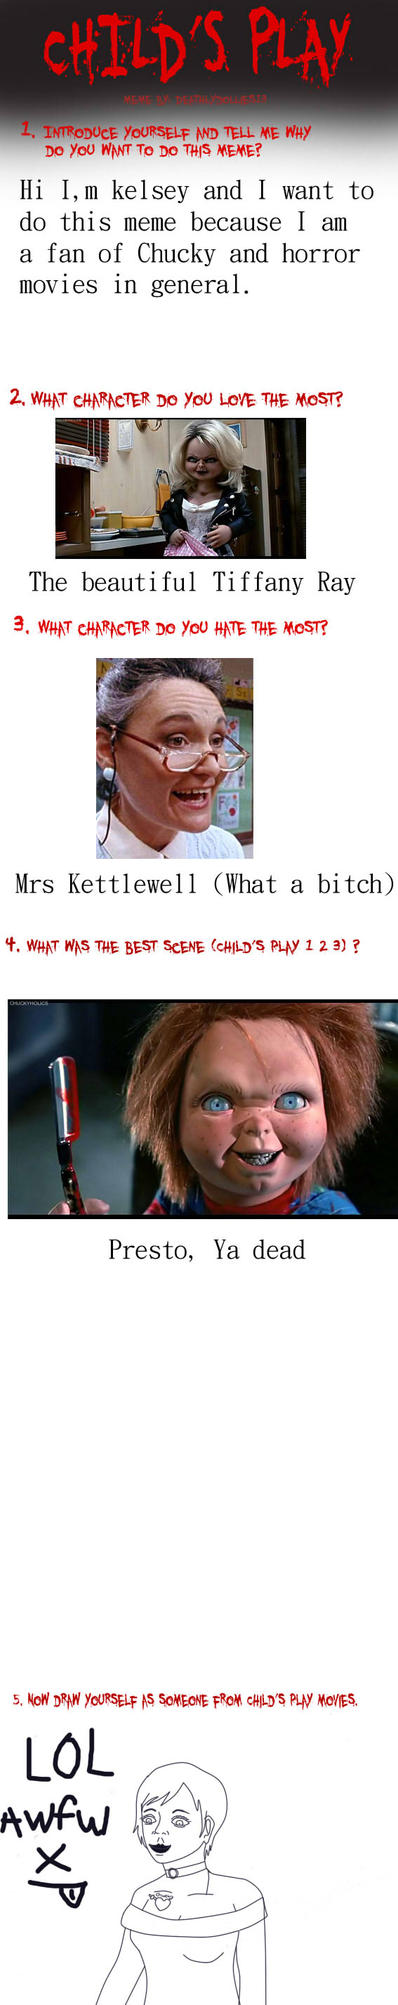 childs play memes - photo #22